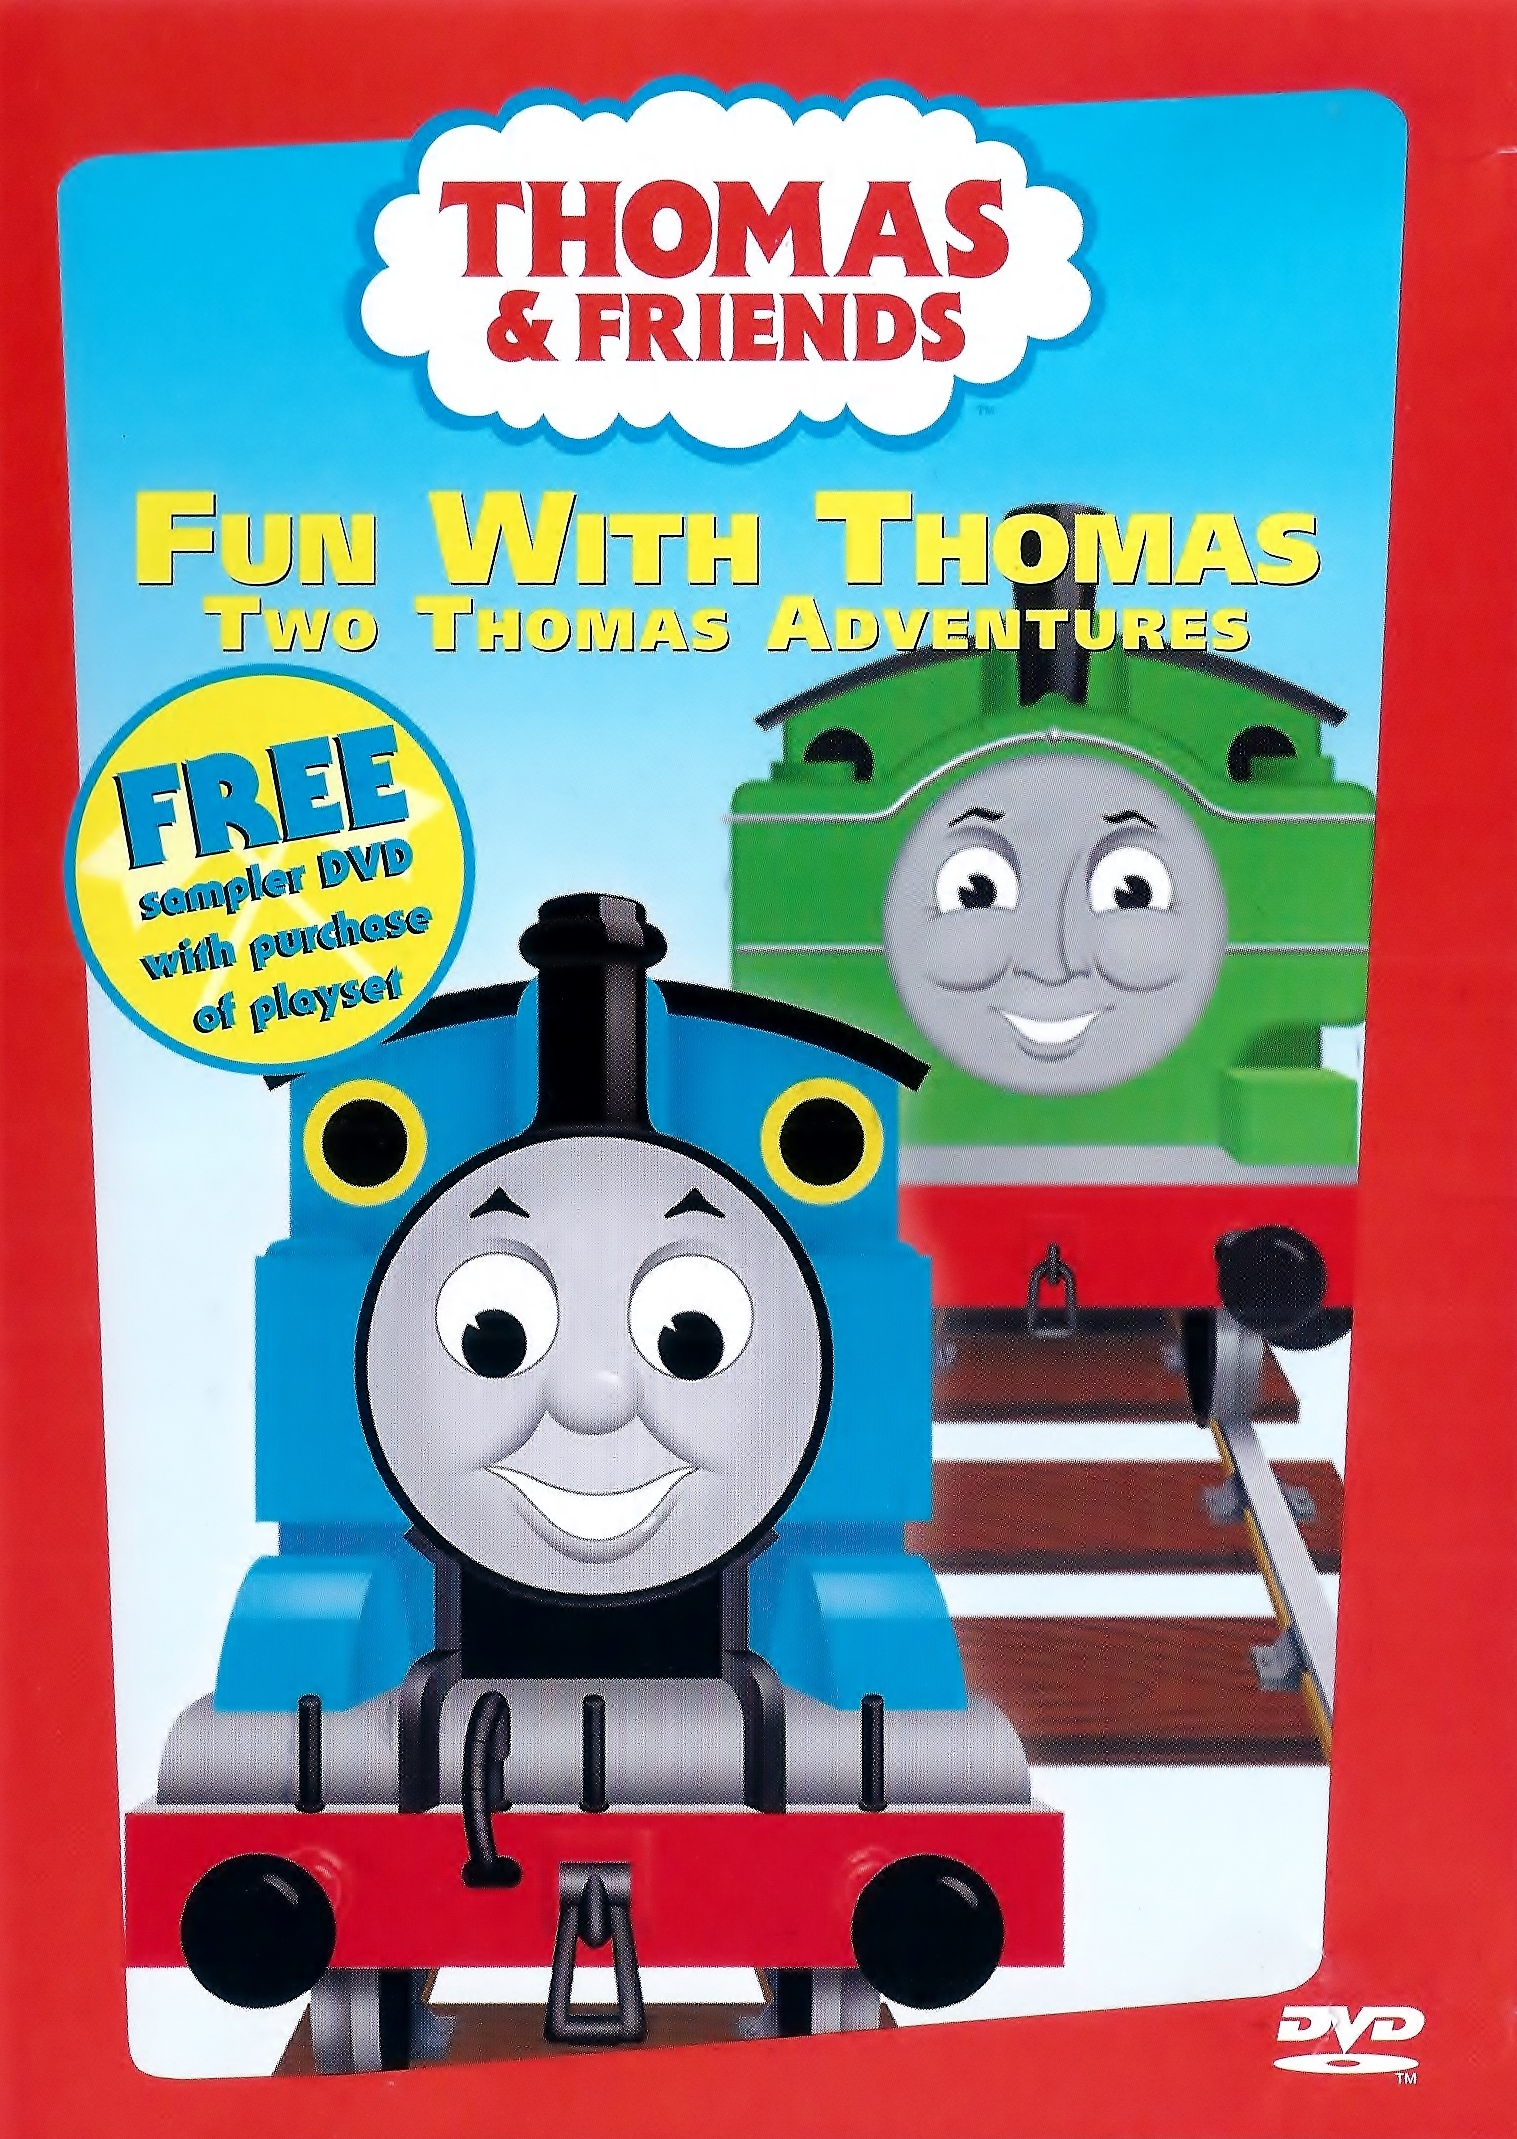 Fun with Thomas